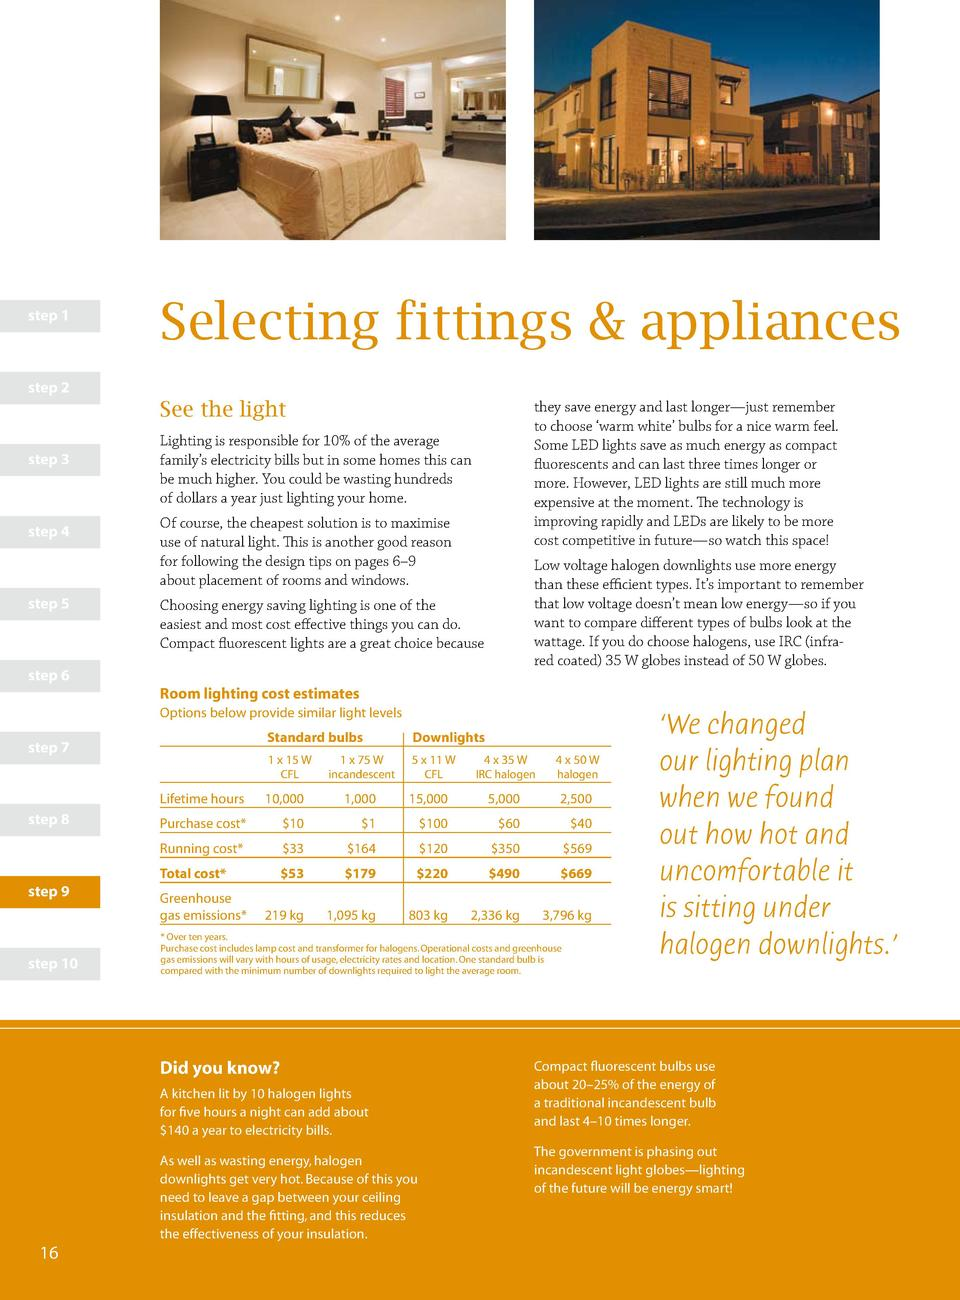 step 1  Selecting fittings   appliances  step 2  See the light step 3  step 4  step 5  they save energy and last longer   ...